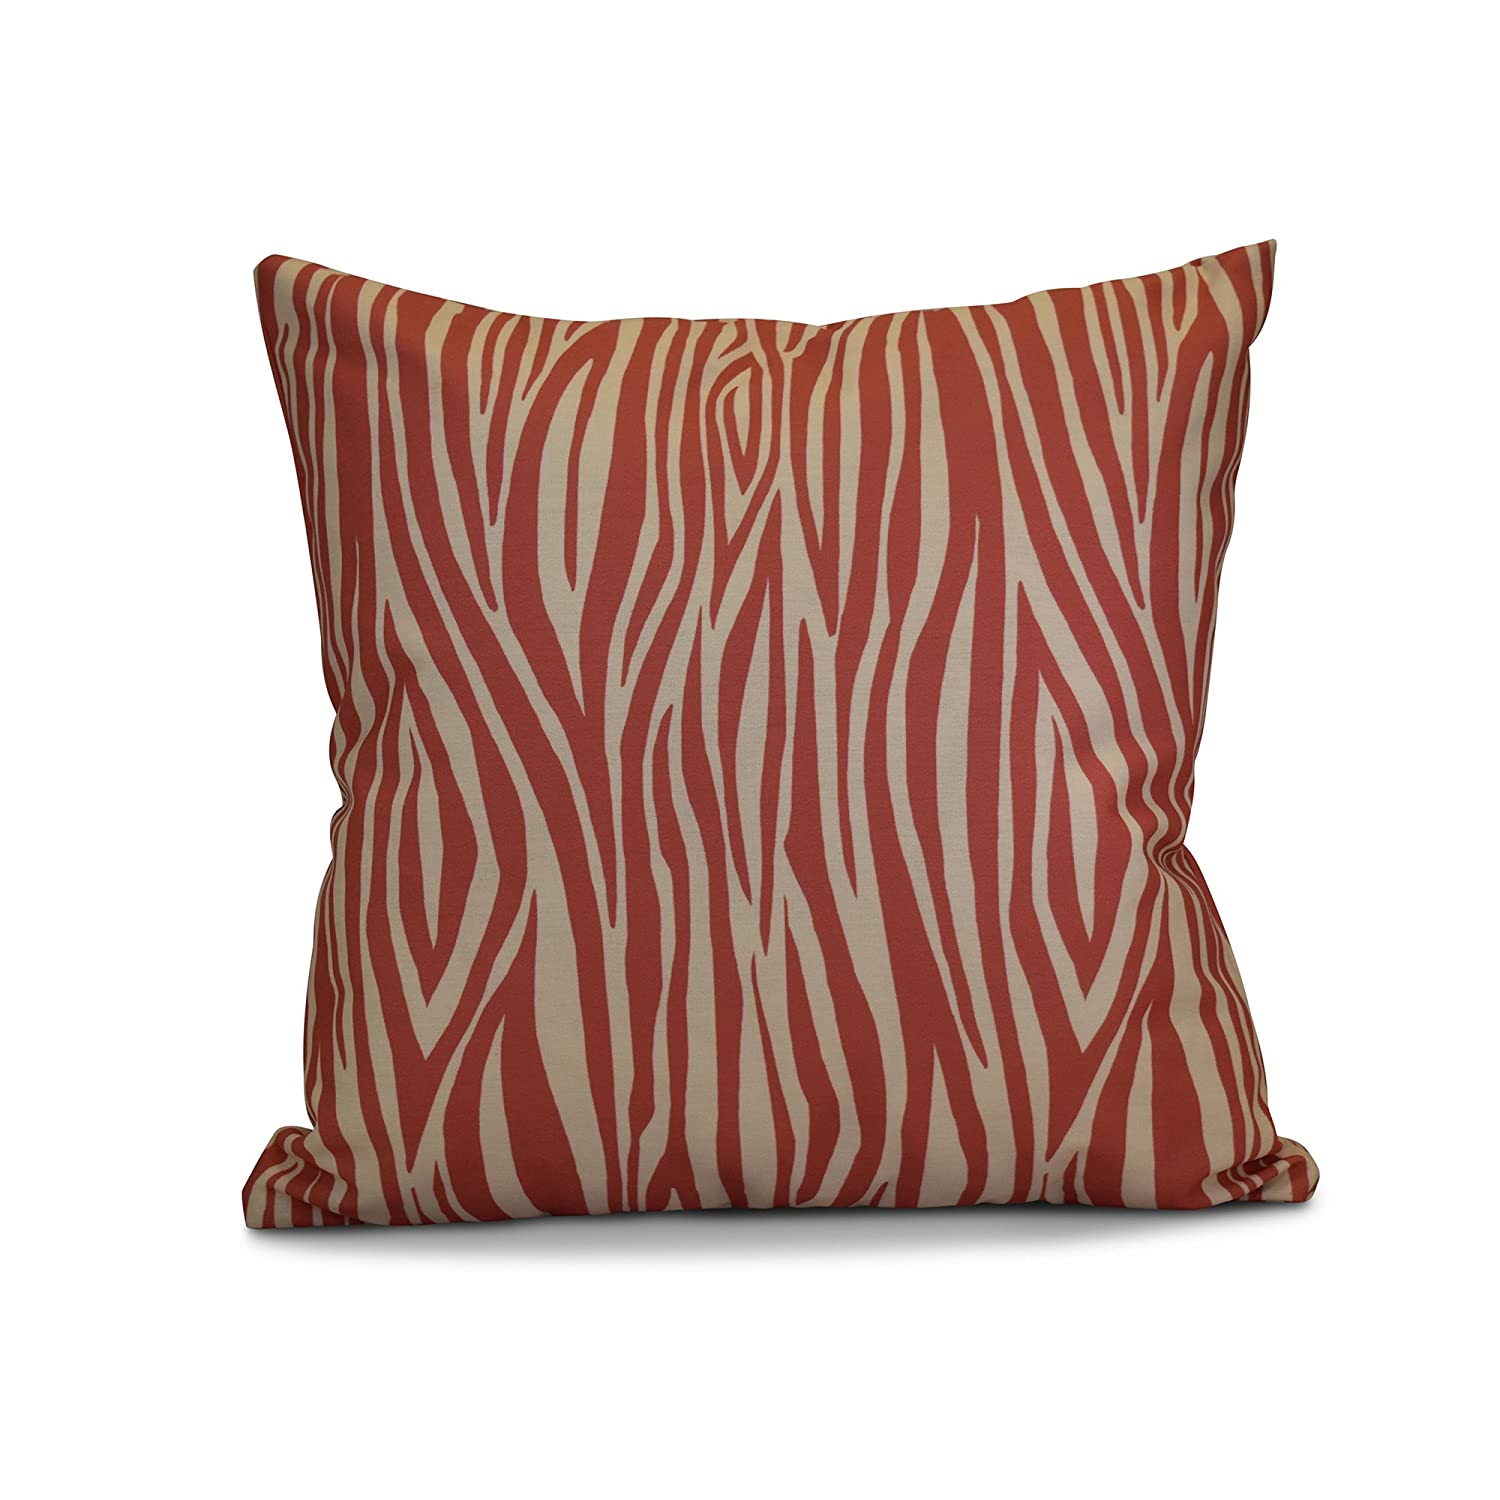 Wood Stripe Geometric Print Pillow 26x26 Orange E by design PGN722OR8IV5-26 26 x 26-inch